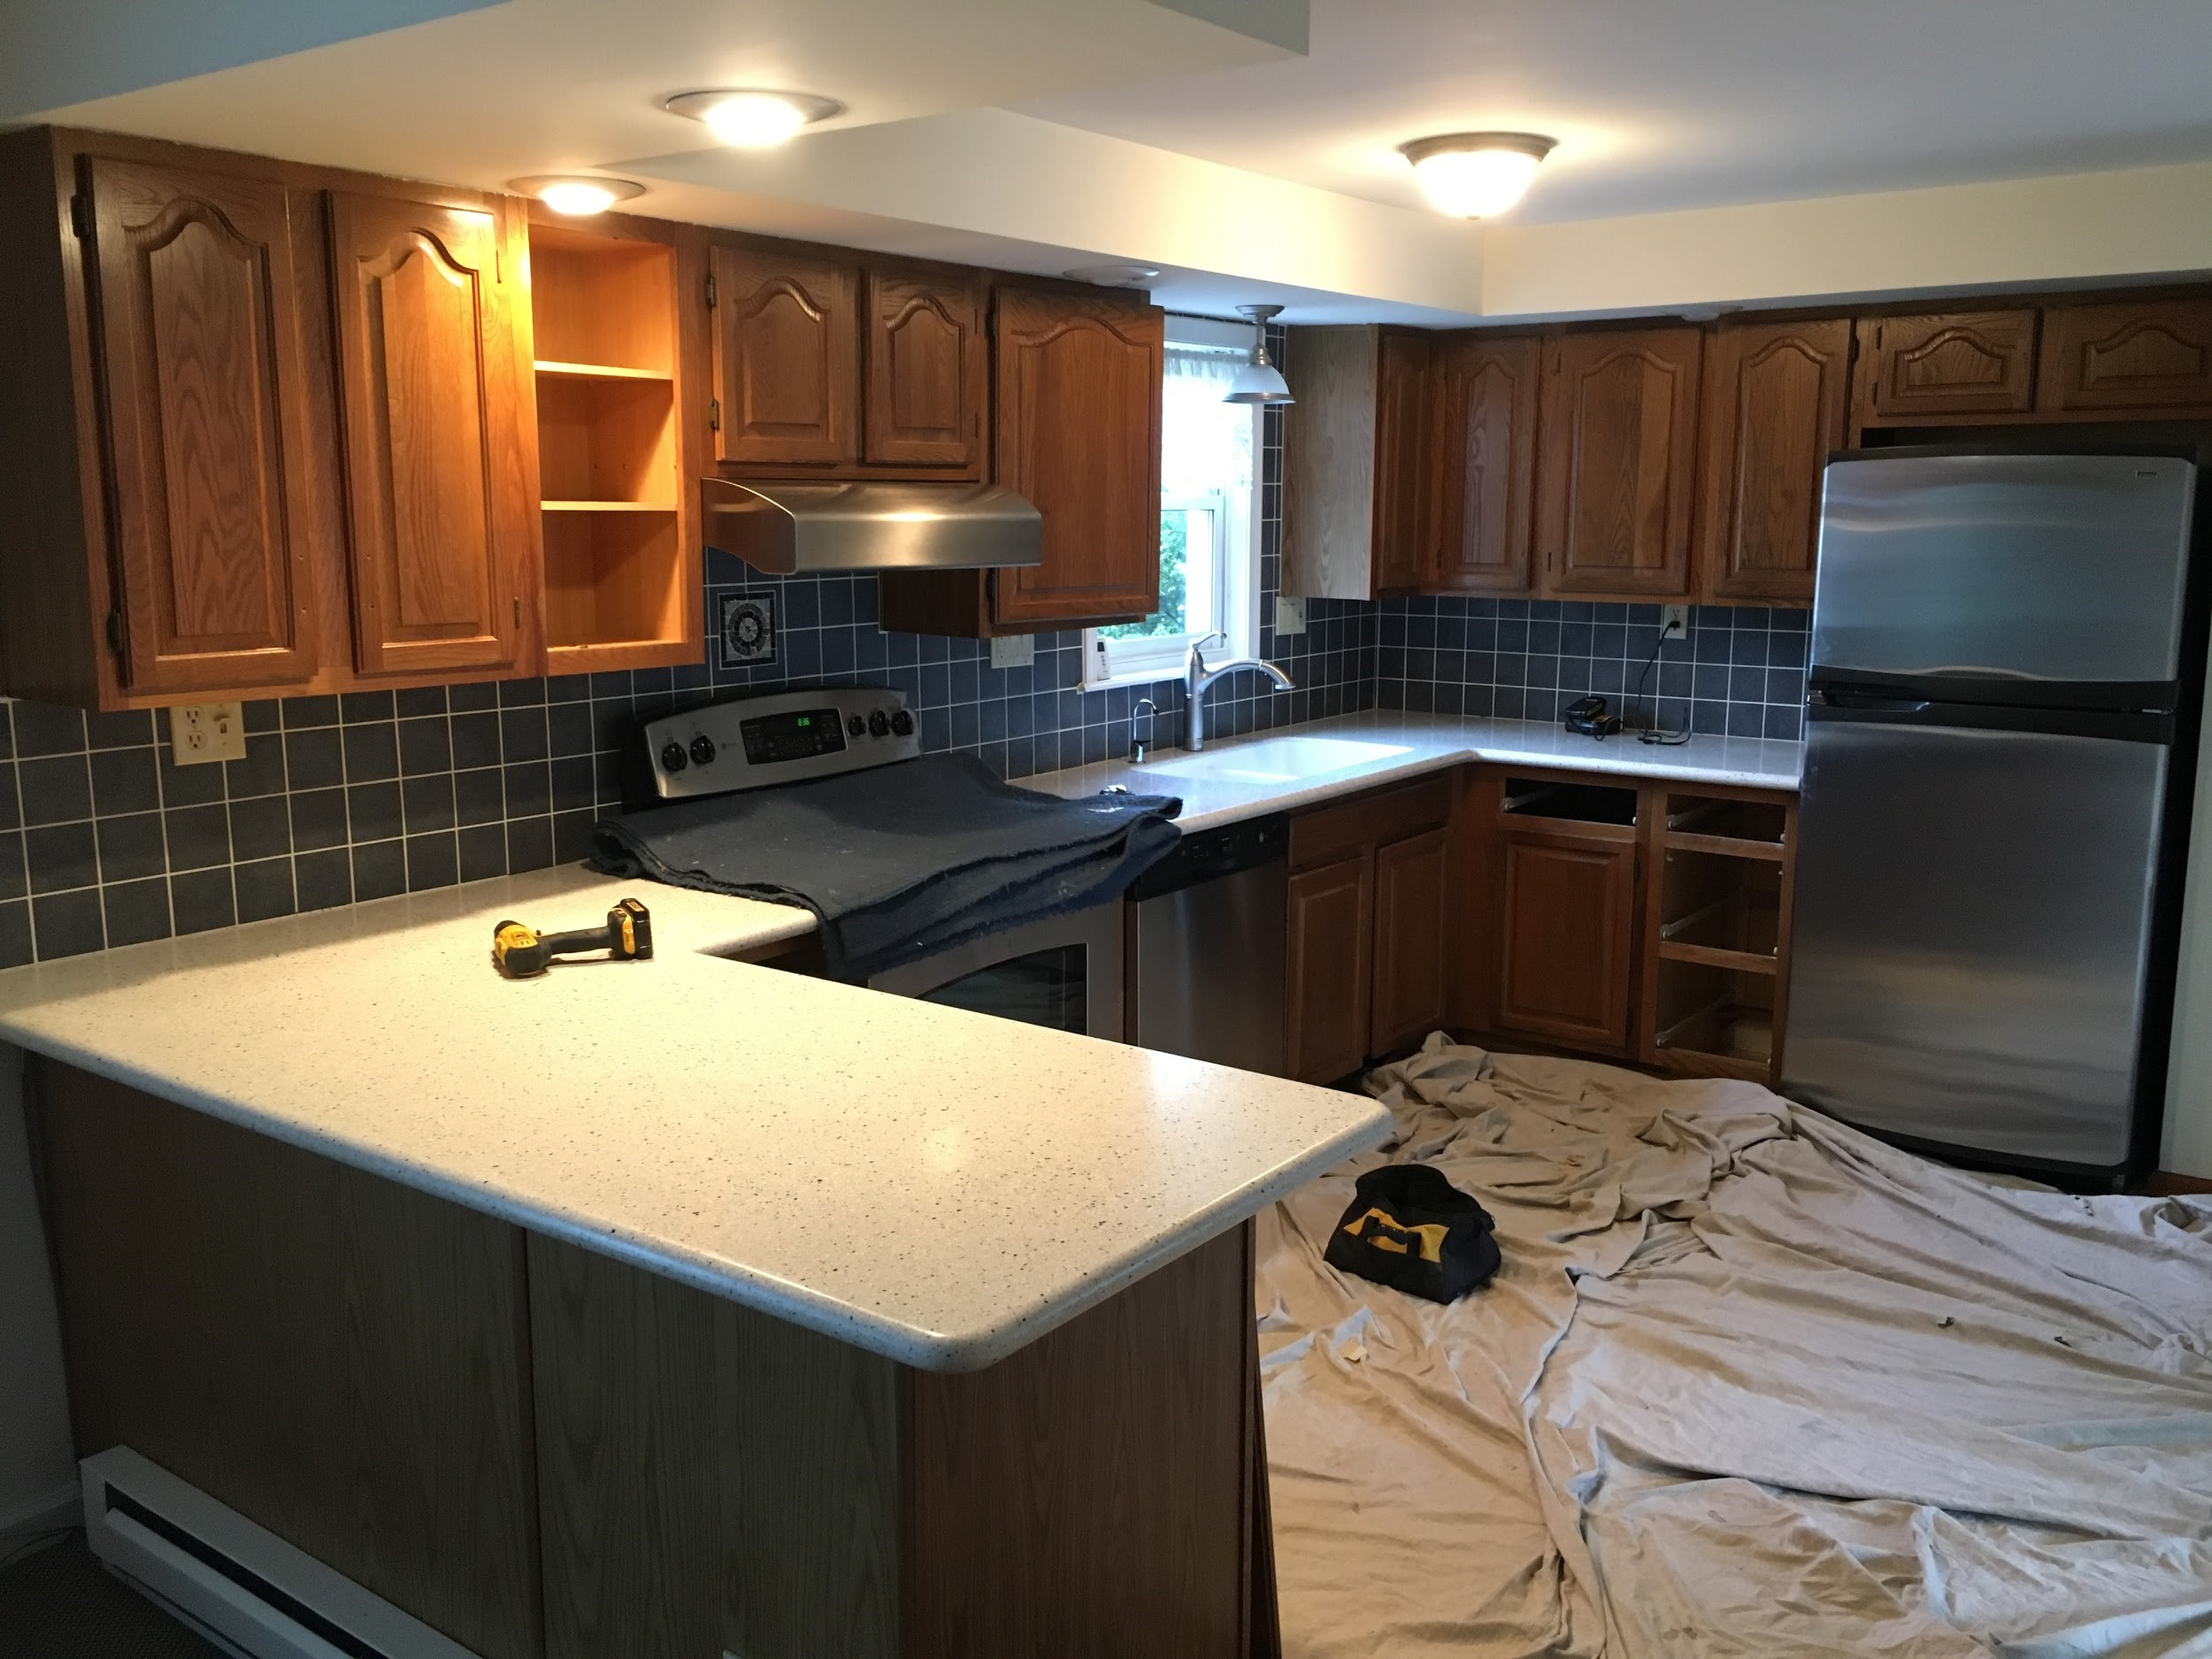 cost cabinets and before refacing the kitchen after